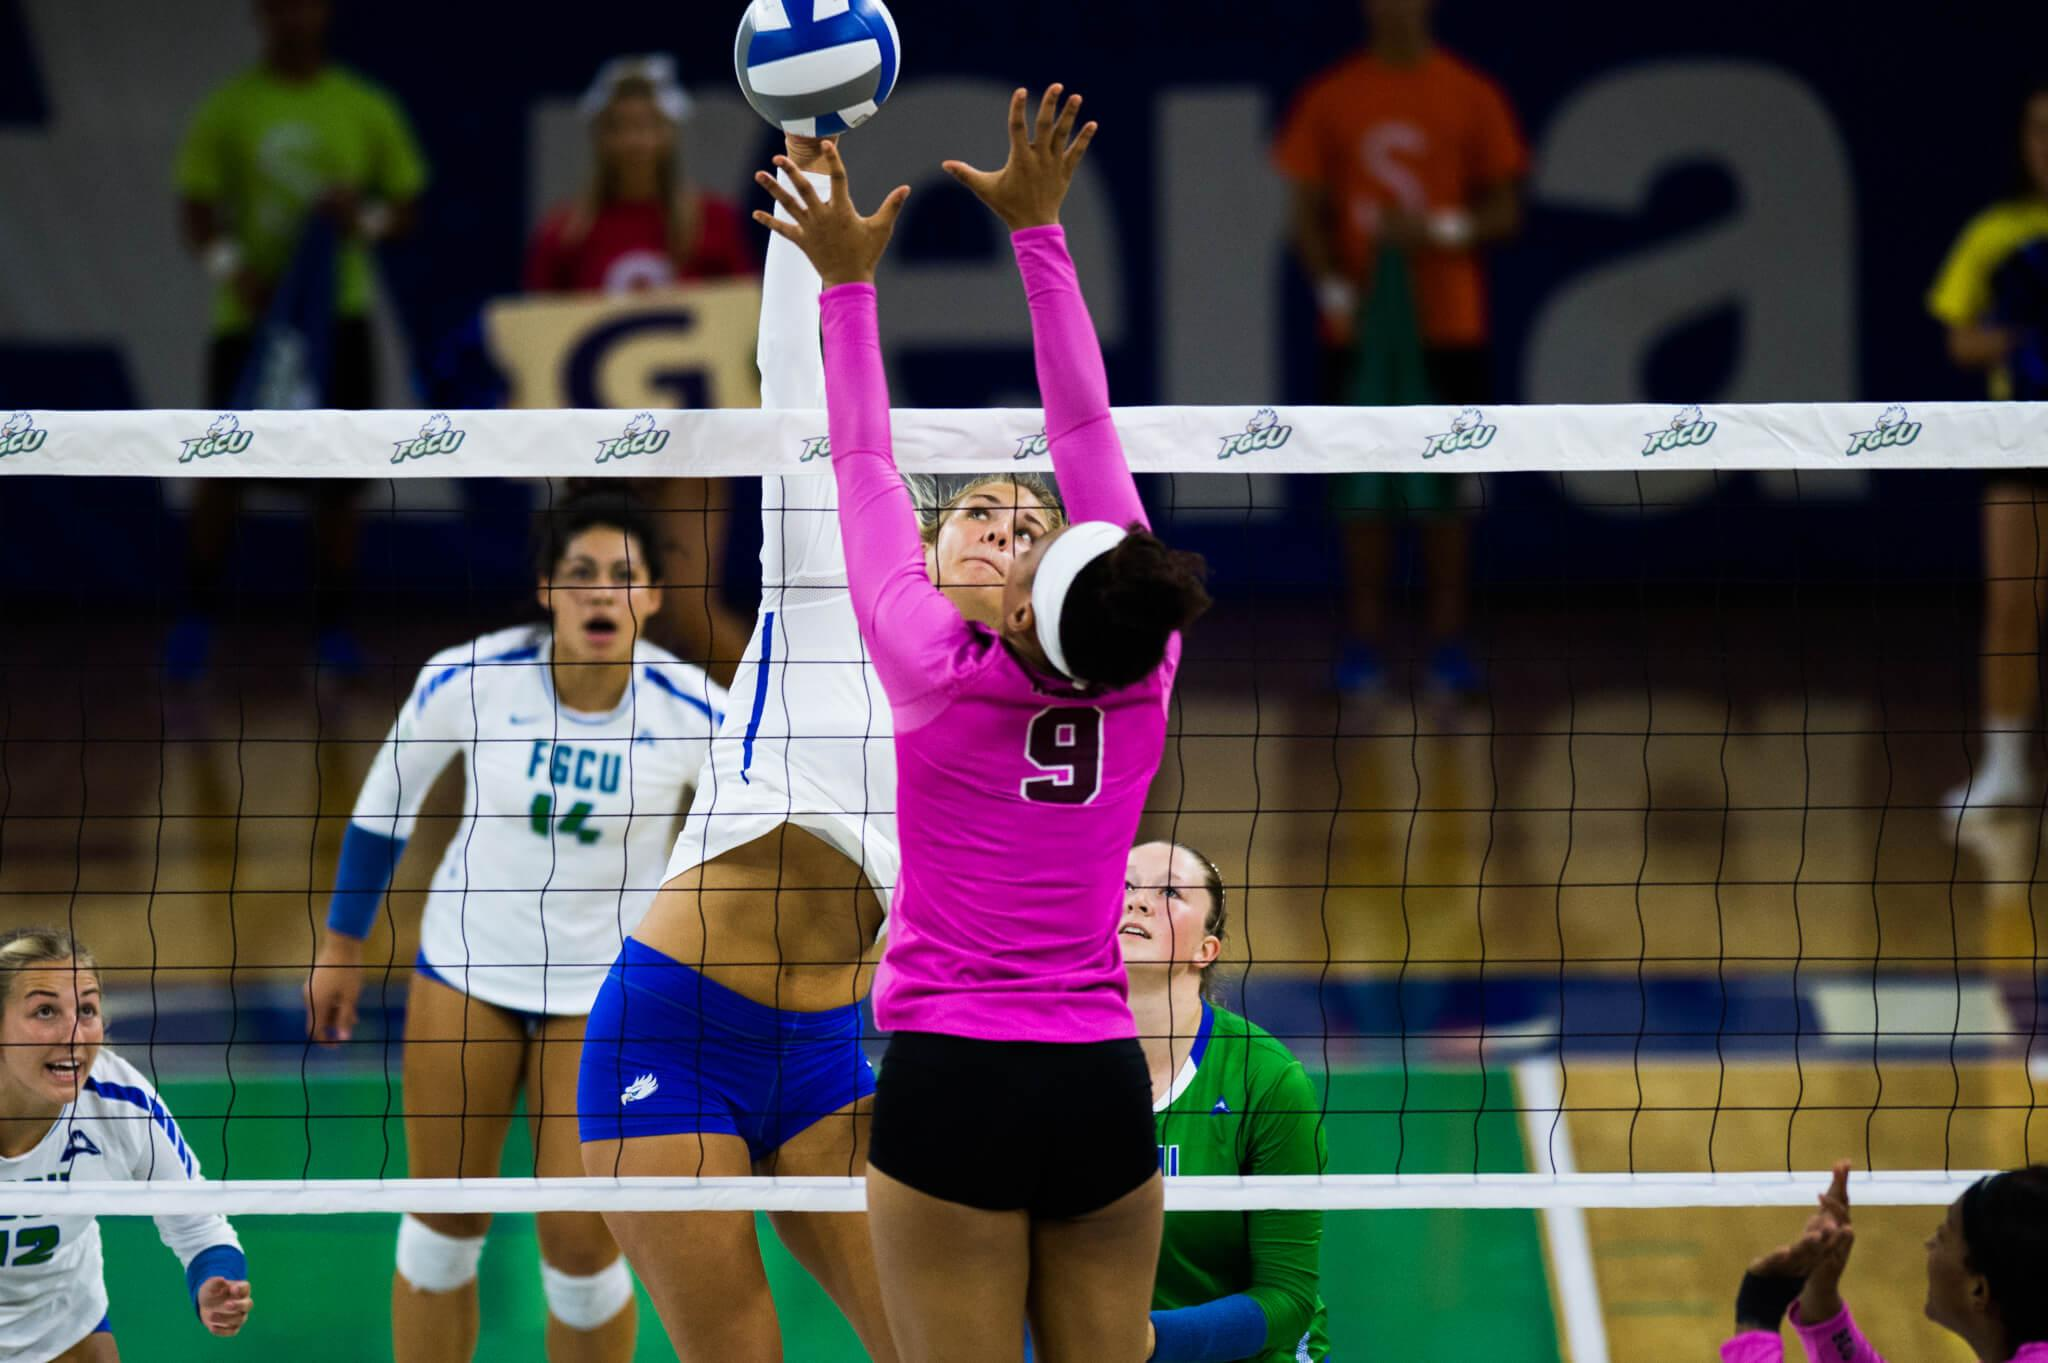 FGCU volleyball falls to Lipscomb in ASUN final